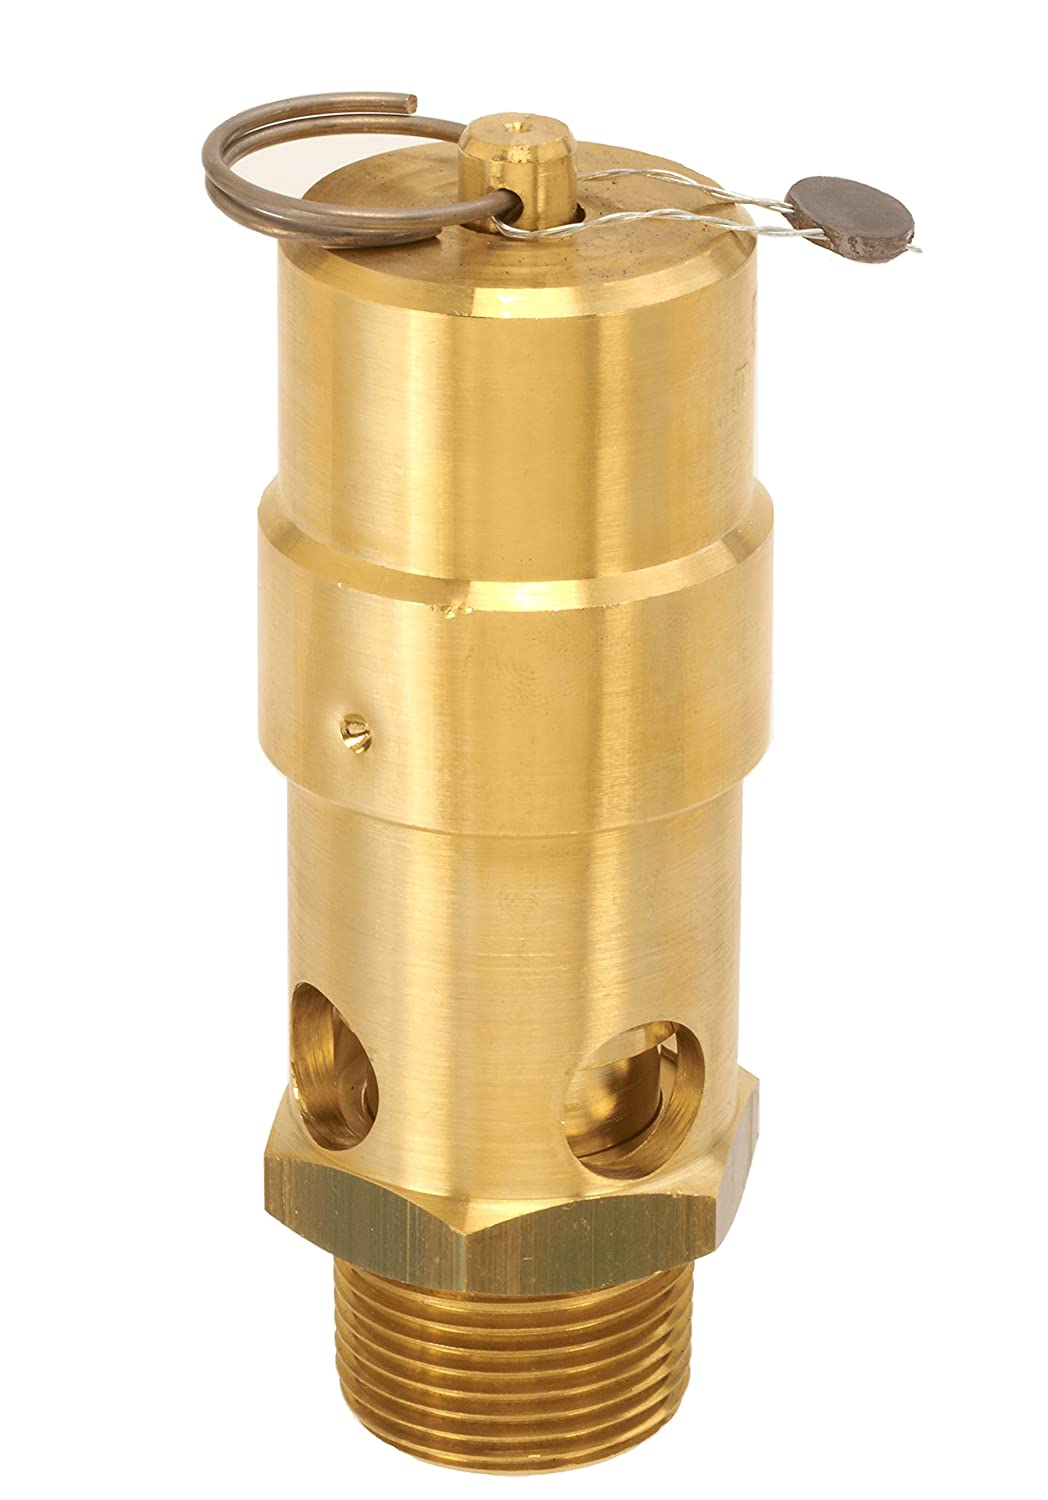 Control Devices SW10-0A060 SW Series Brass Soft Seat ASME Safety Valve, 60 psi Set Pressure, 1 Male NPT